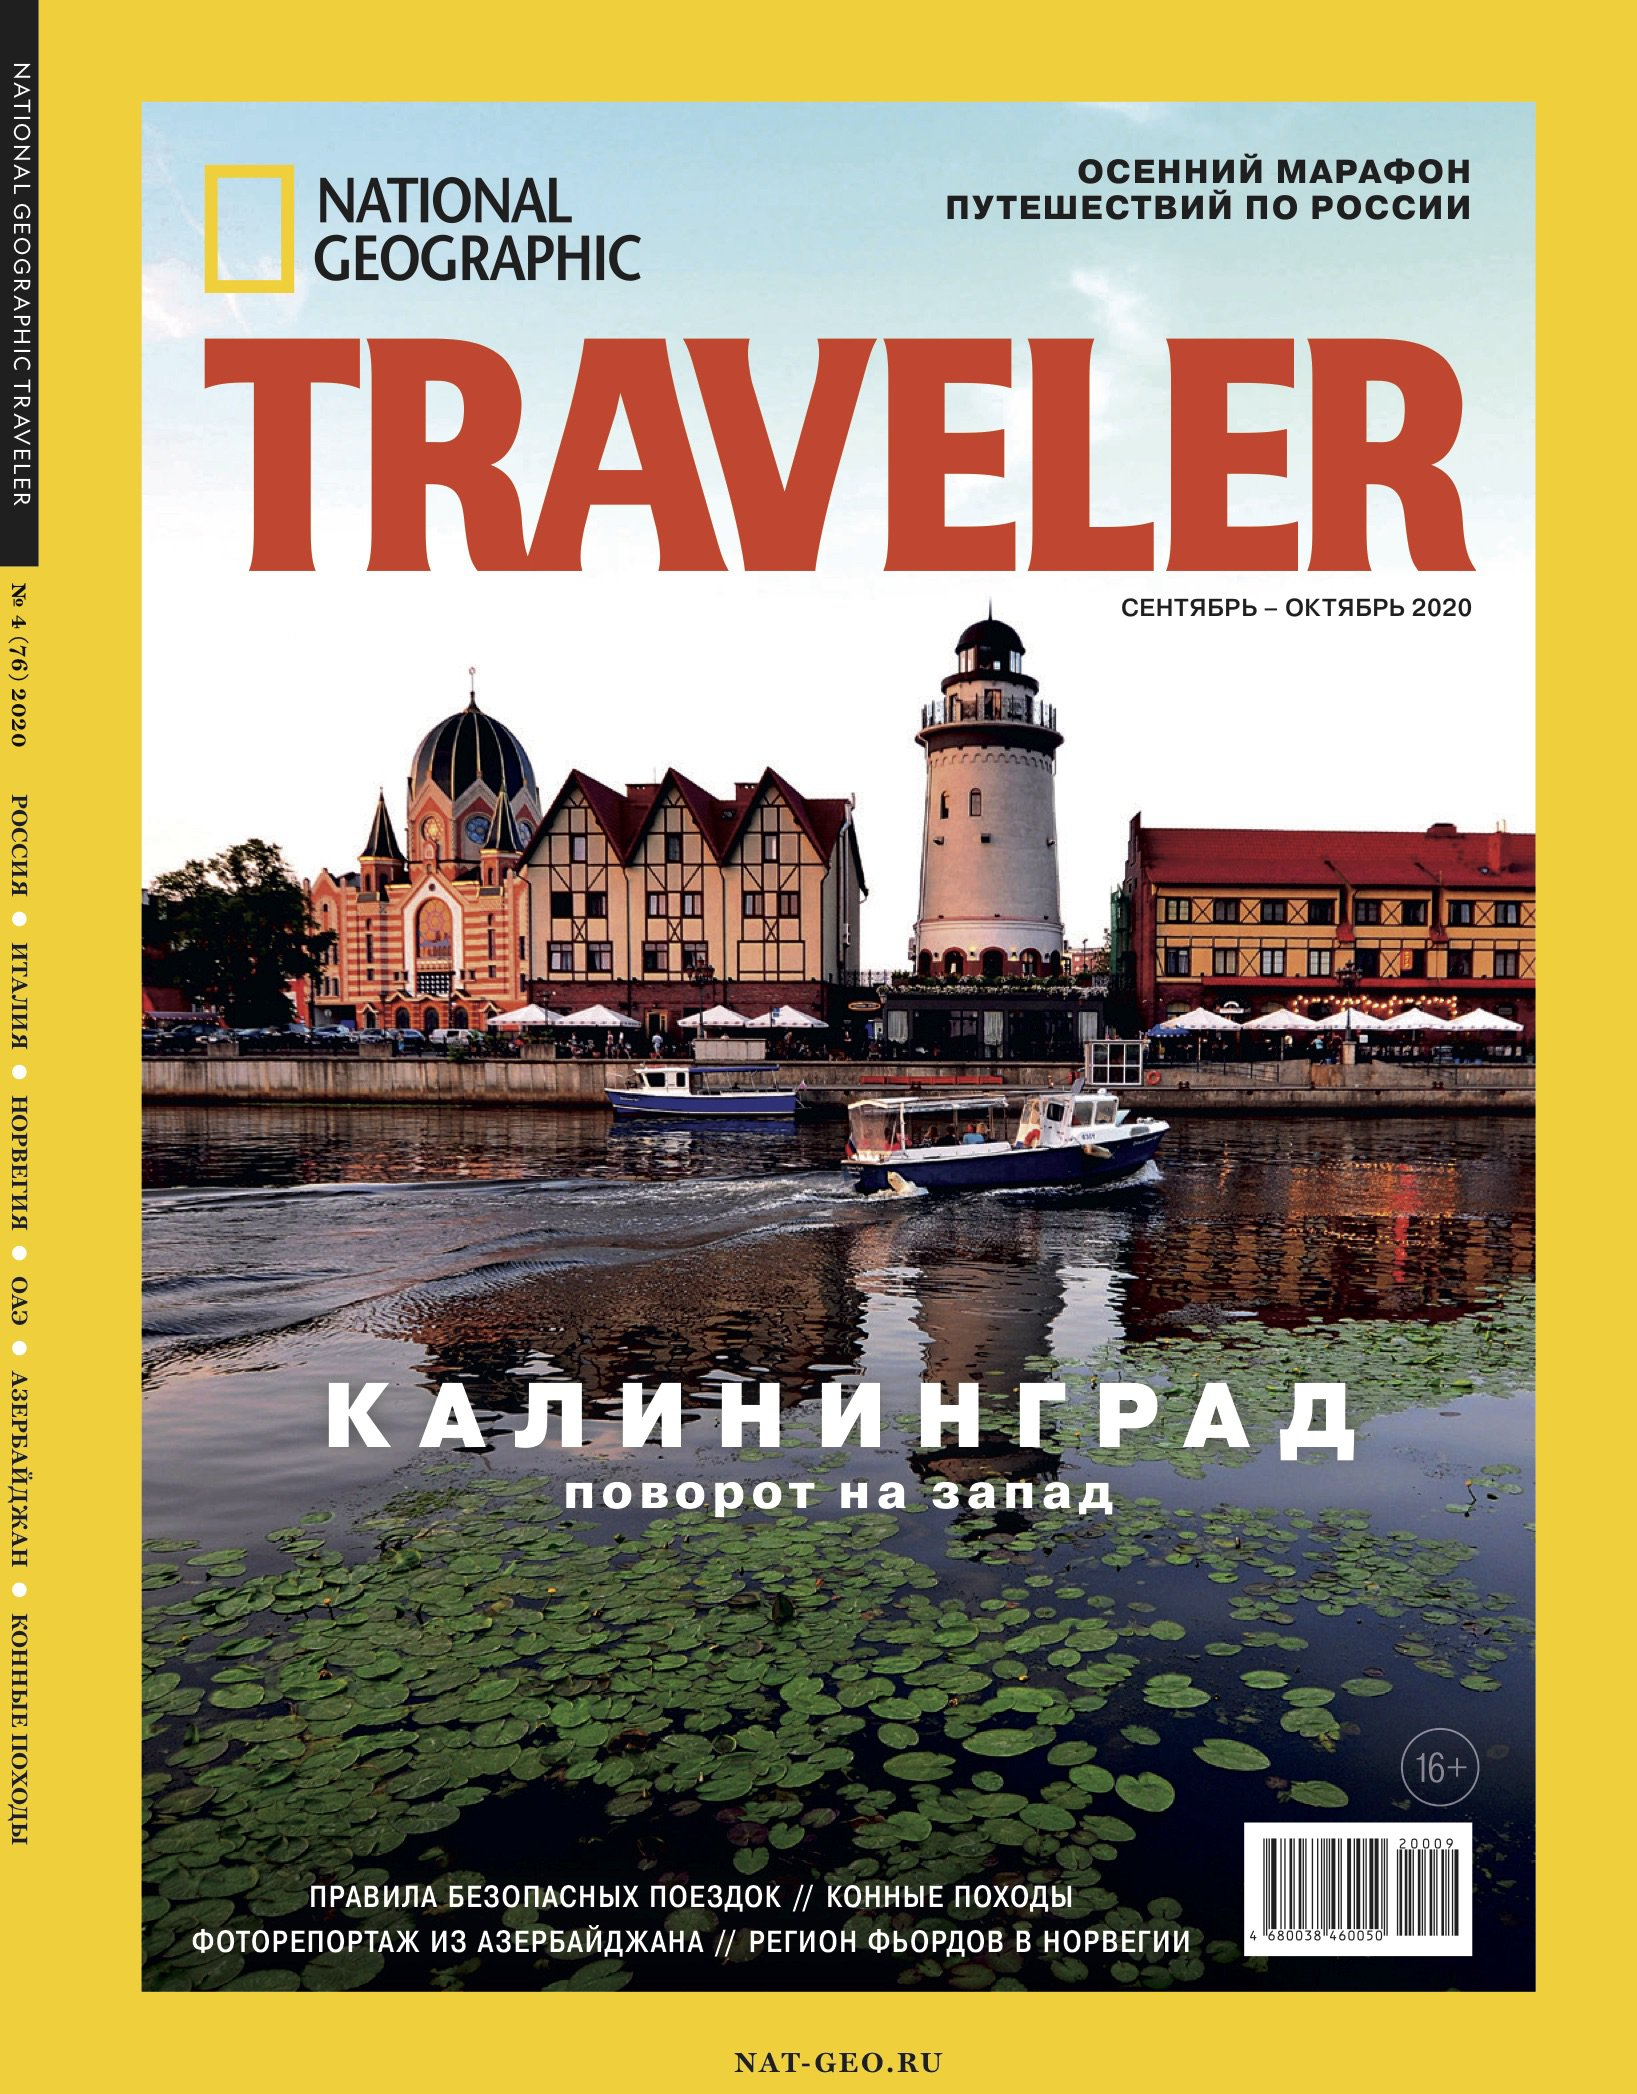 National Geographic Traveler № 4 (76), сентябрь-октябрь